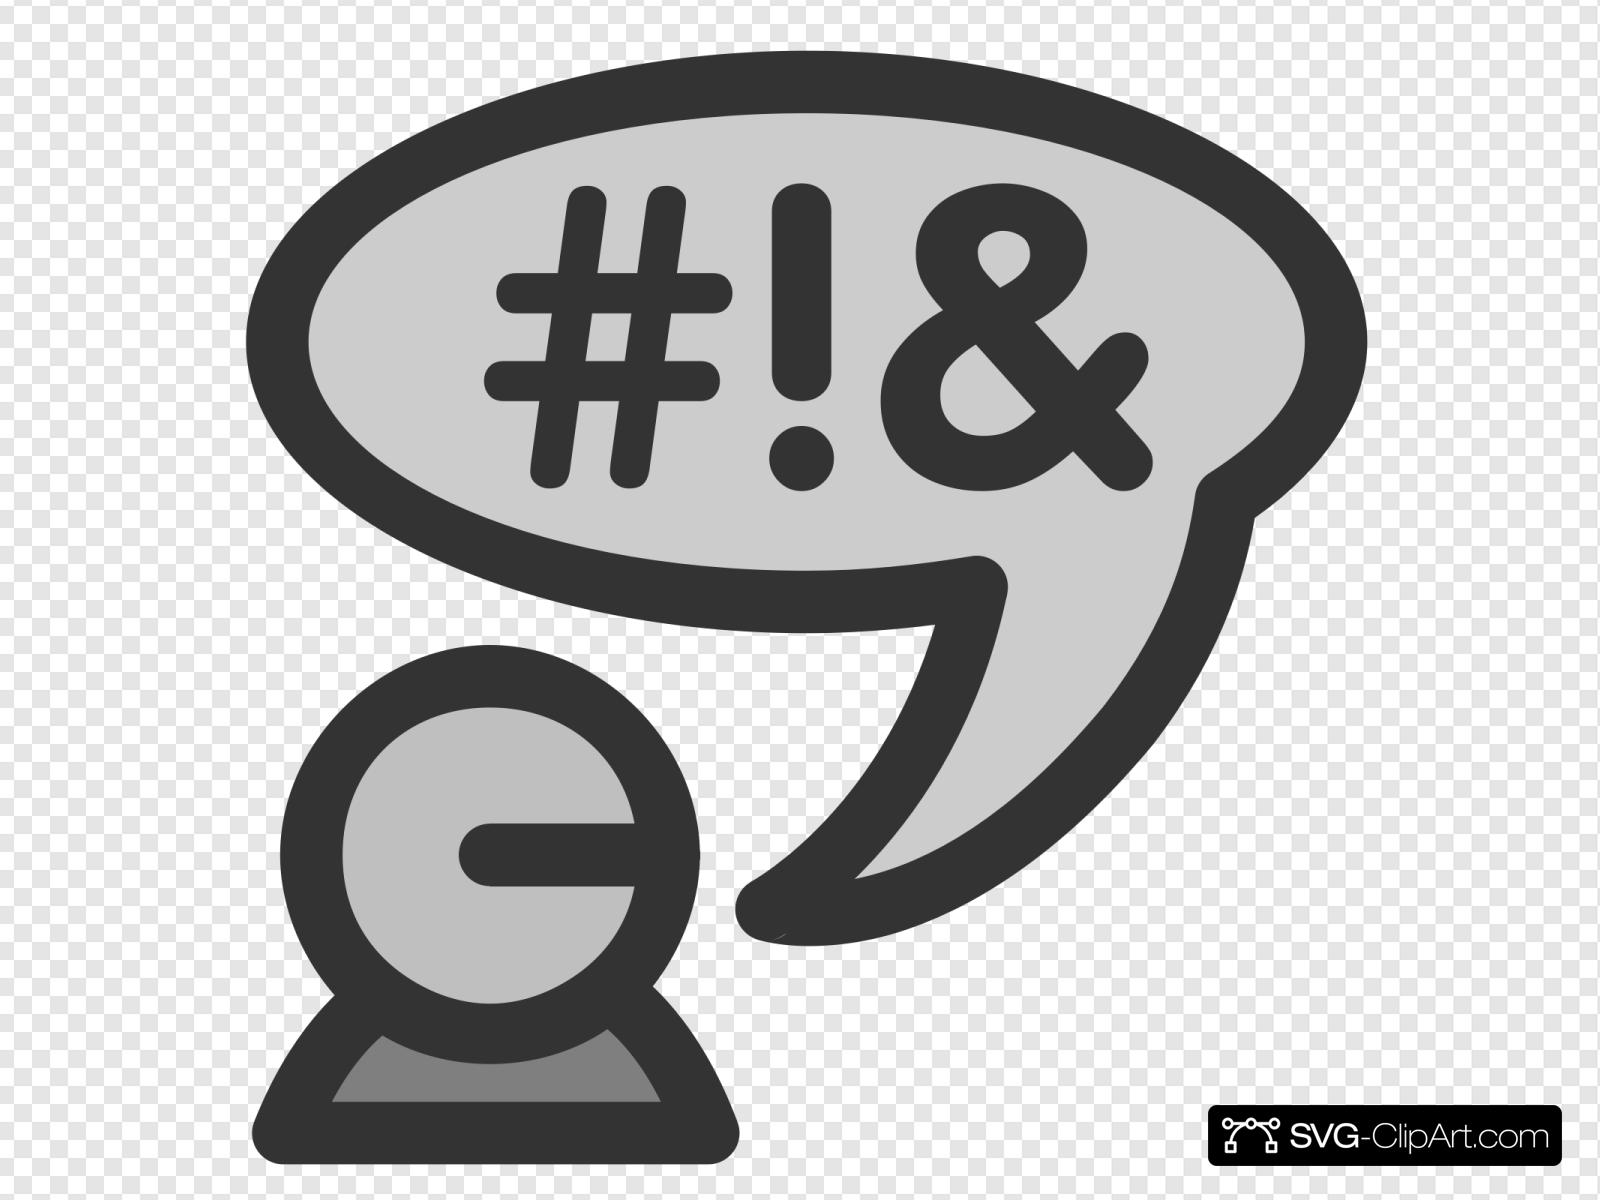 Language pictures clipart png library library Chat Language Clip art, Icon and SVG - SVG Clipart png library library